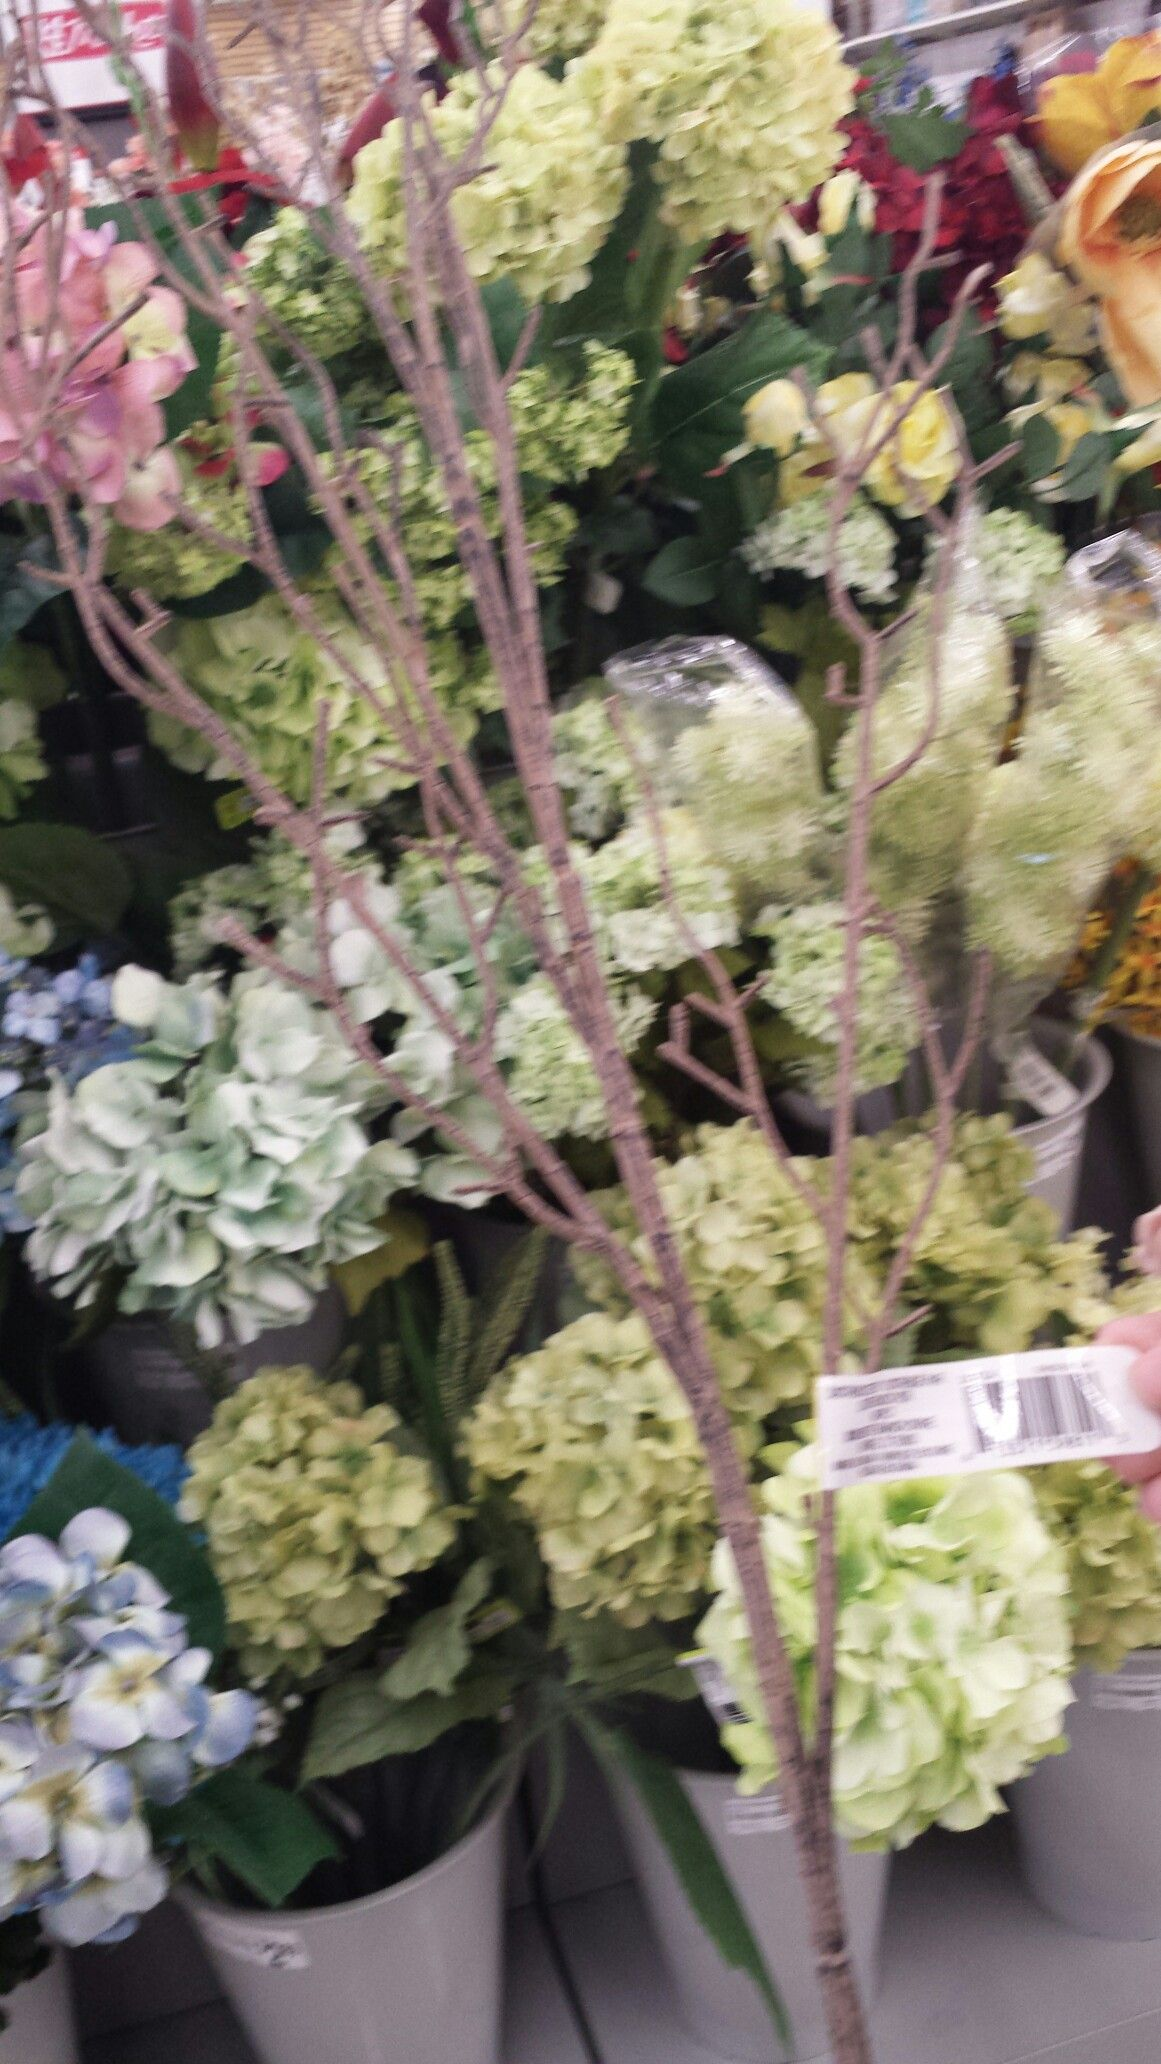 Stick Accent In The Fake Flowers At Michael S Craft Store In Charlottesville Virginia 4 99 Each Michaels Crafts Store Fake Flowers Michaels Craft